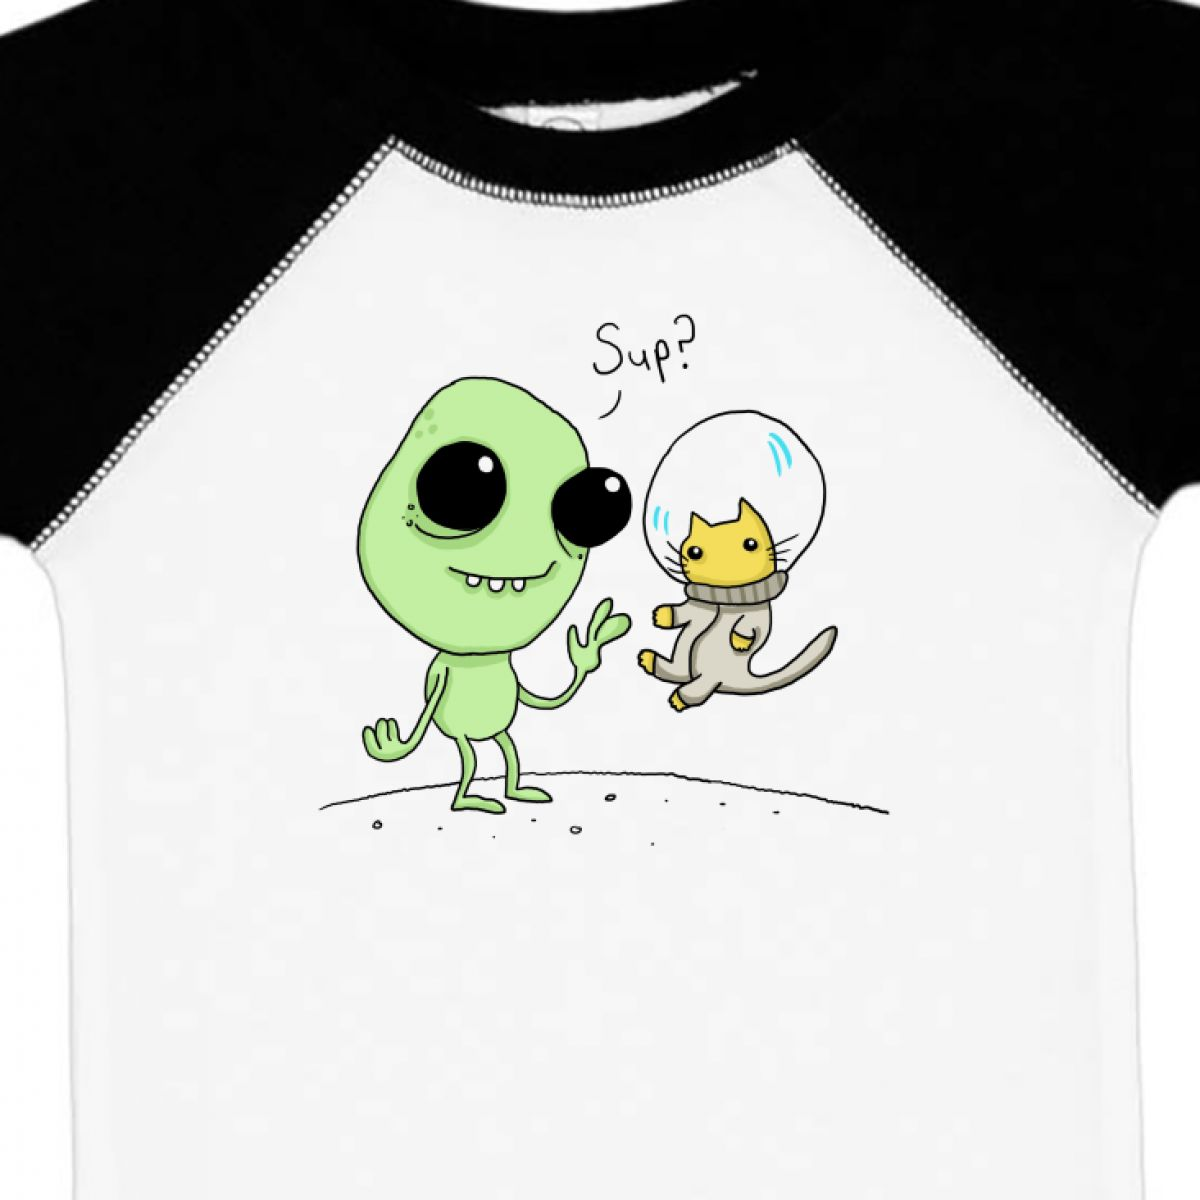 Inktastic Alien And Astronaut Kitty Cat Infant Creeper Sup T-shirt Nasa Shirt Up